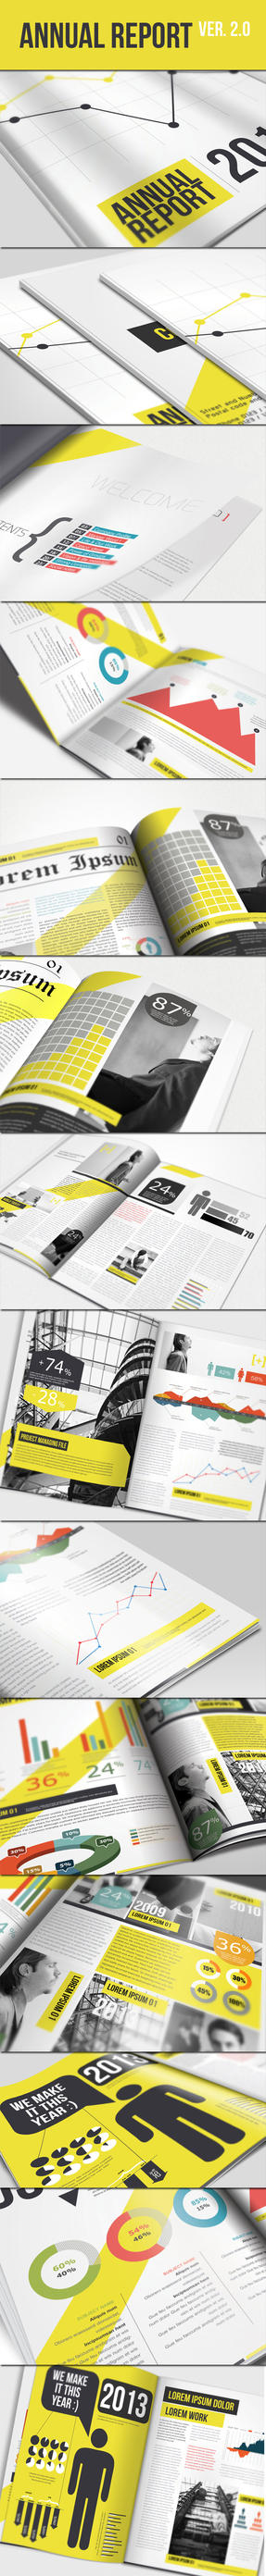 Annual Report Brochure Ver 2.0 by UnicoDesign